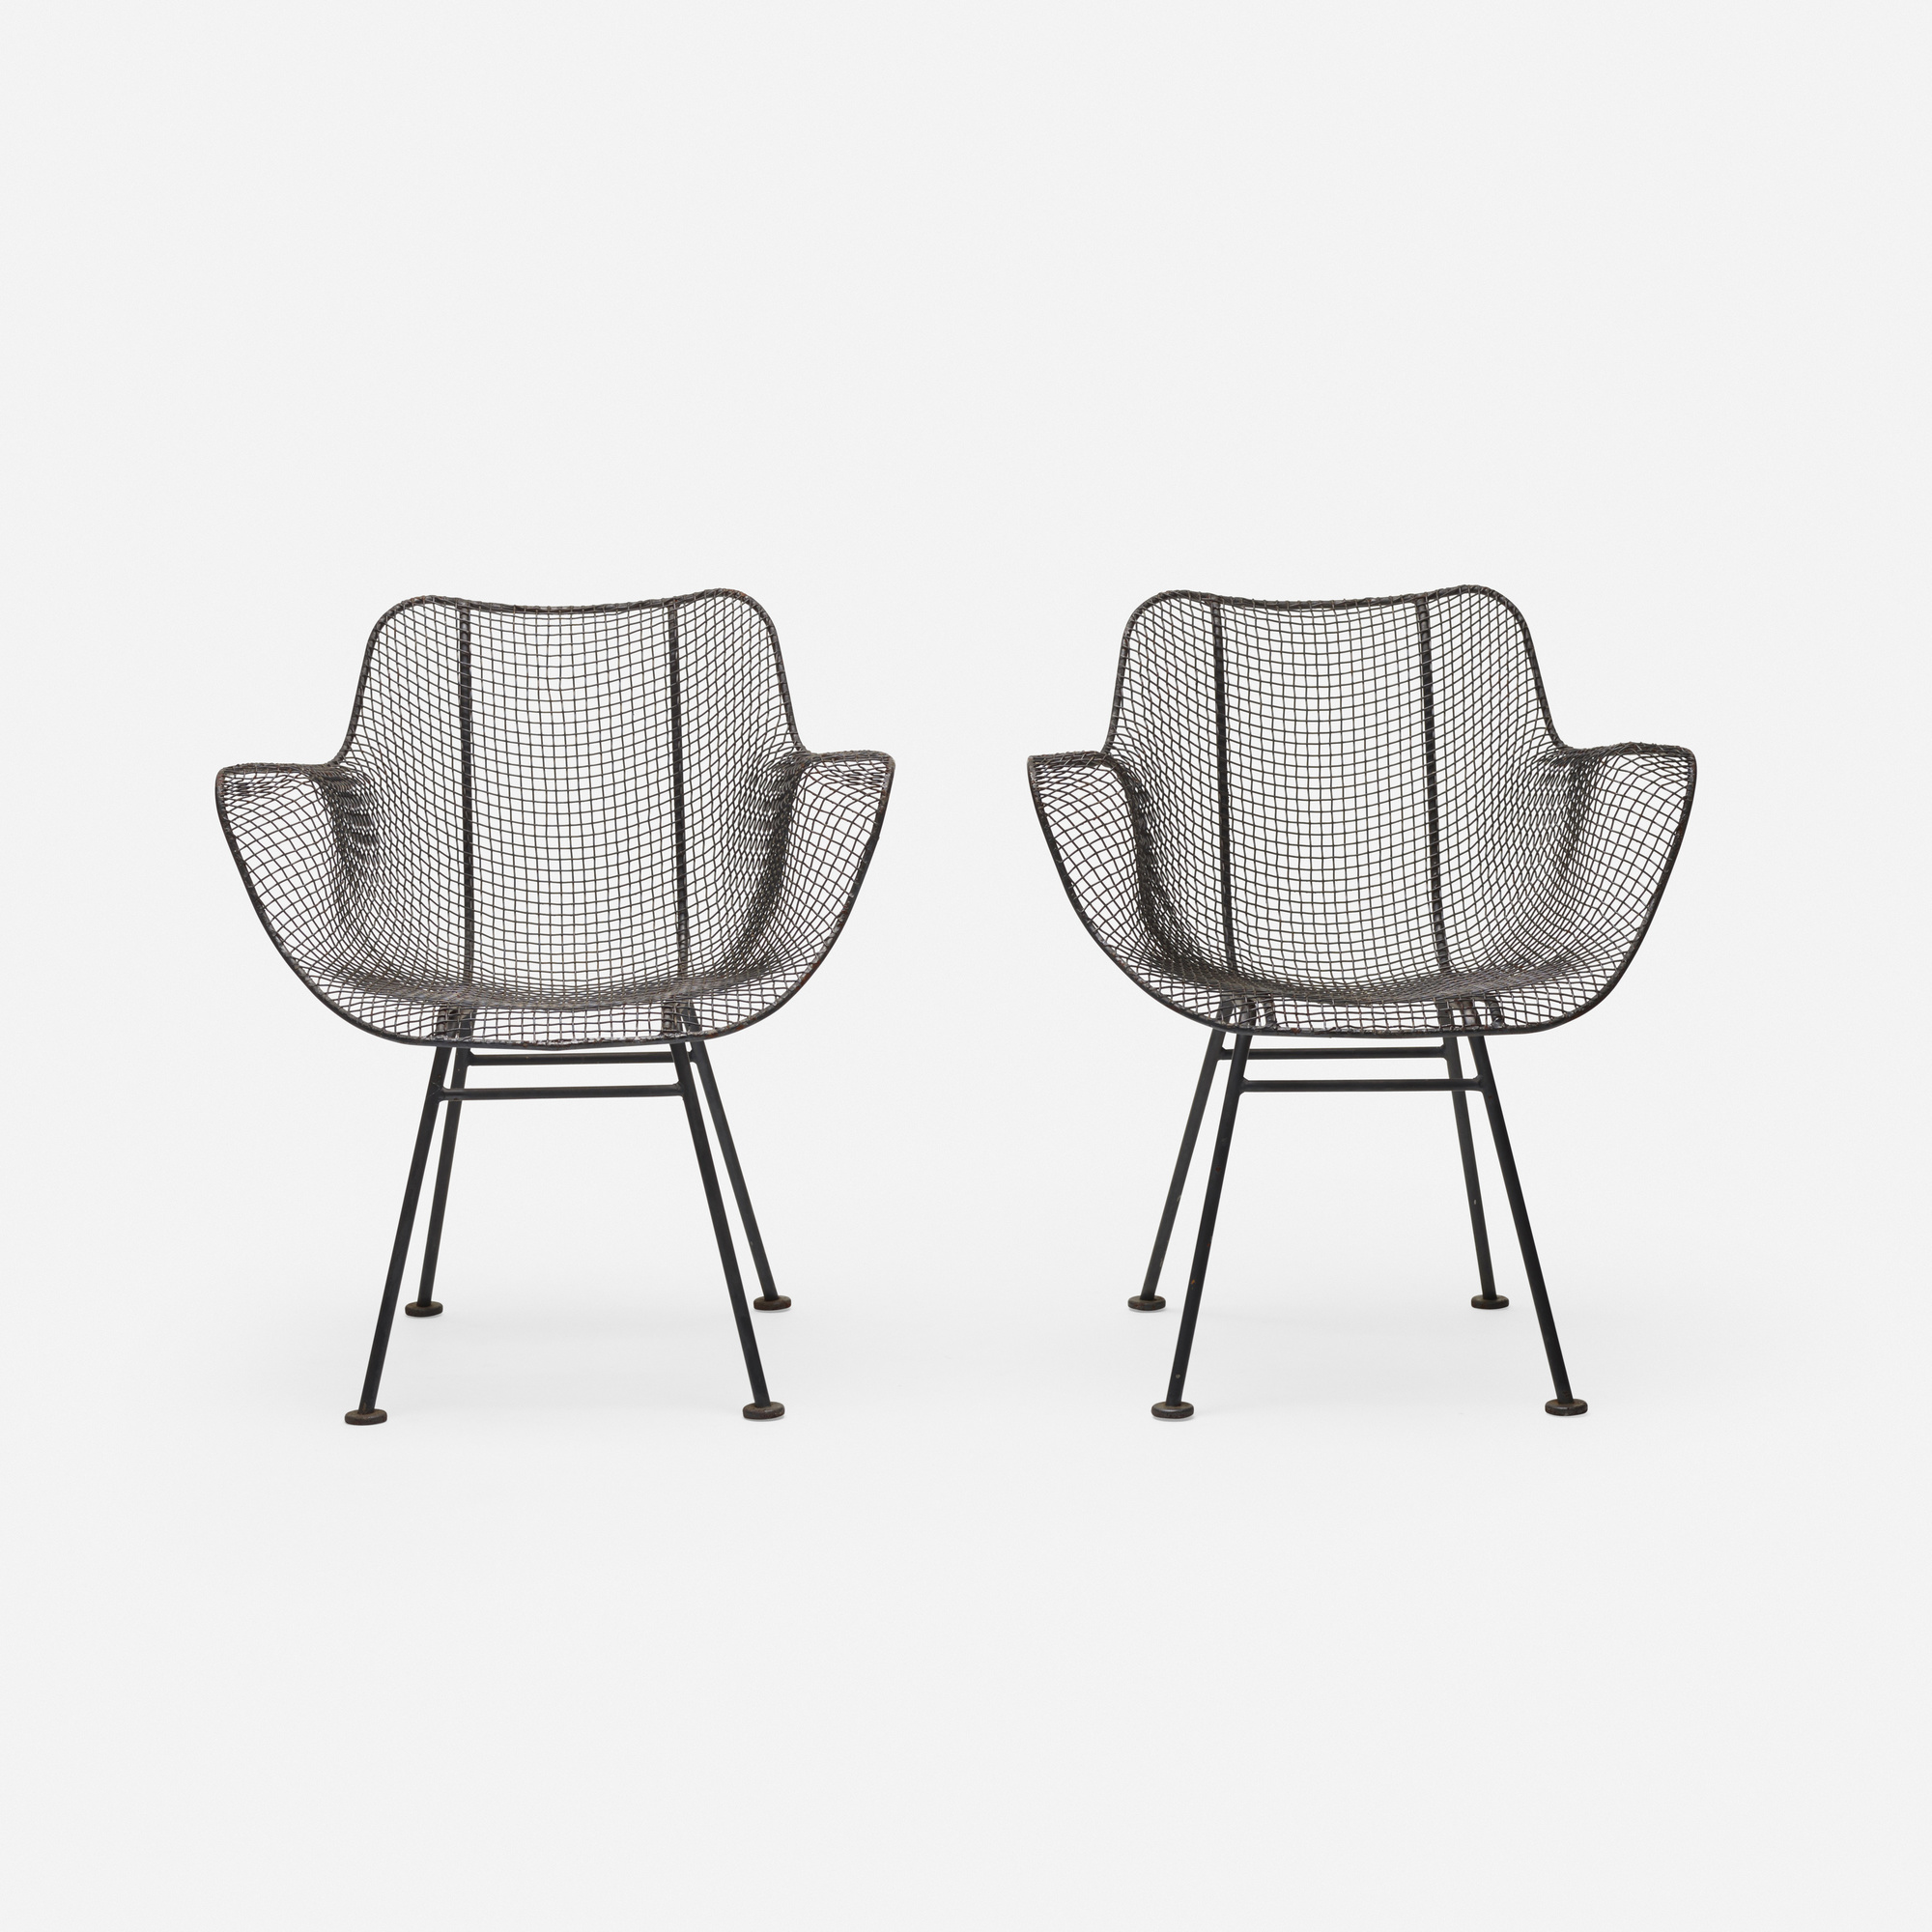 375: Russell Woodard / Sculptura armchairs, pair (2 of 2)